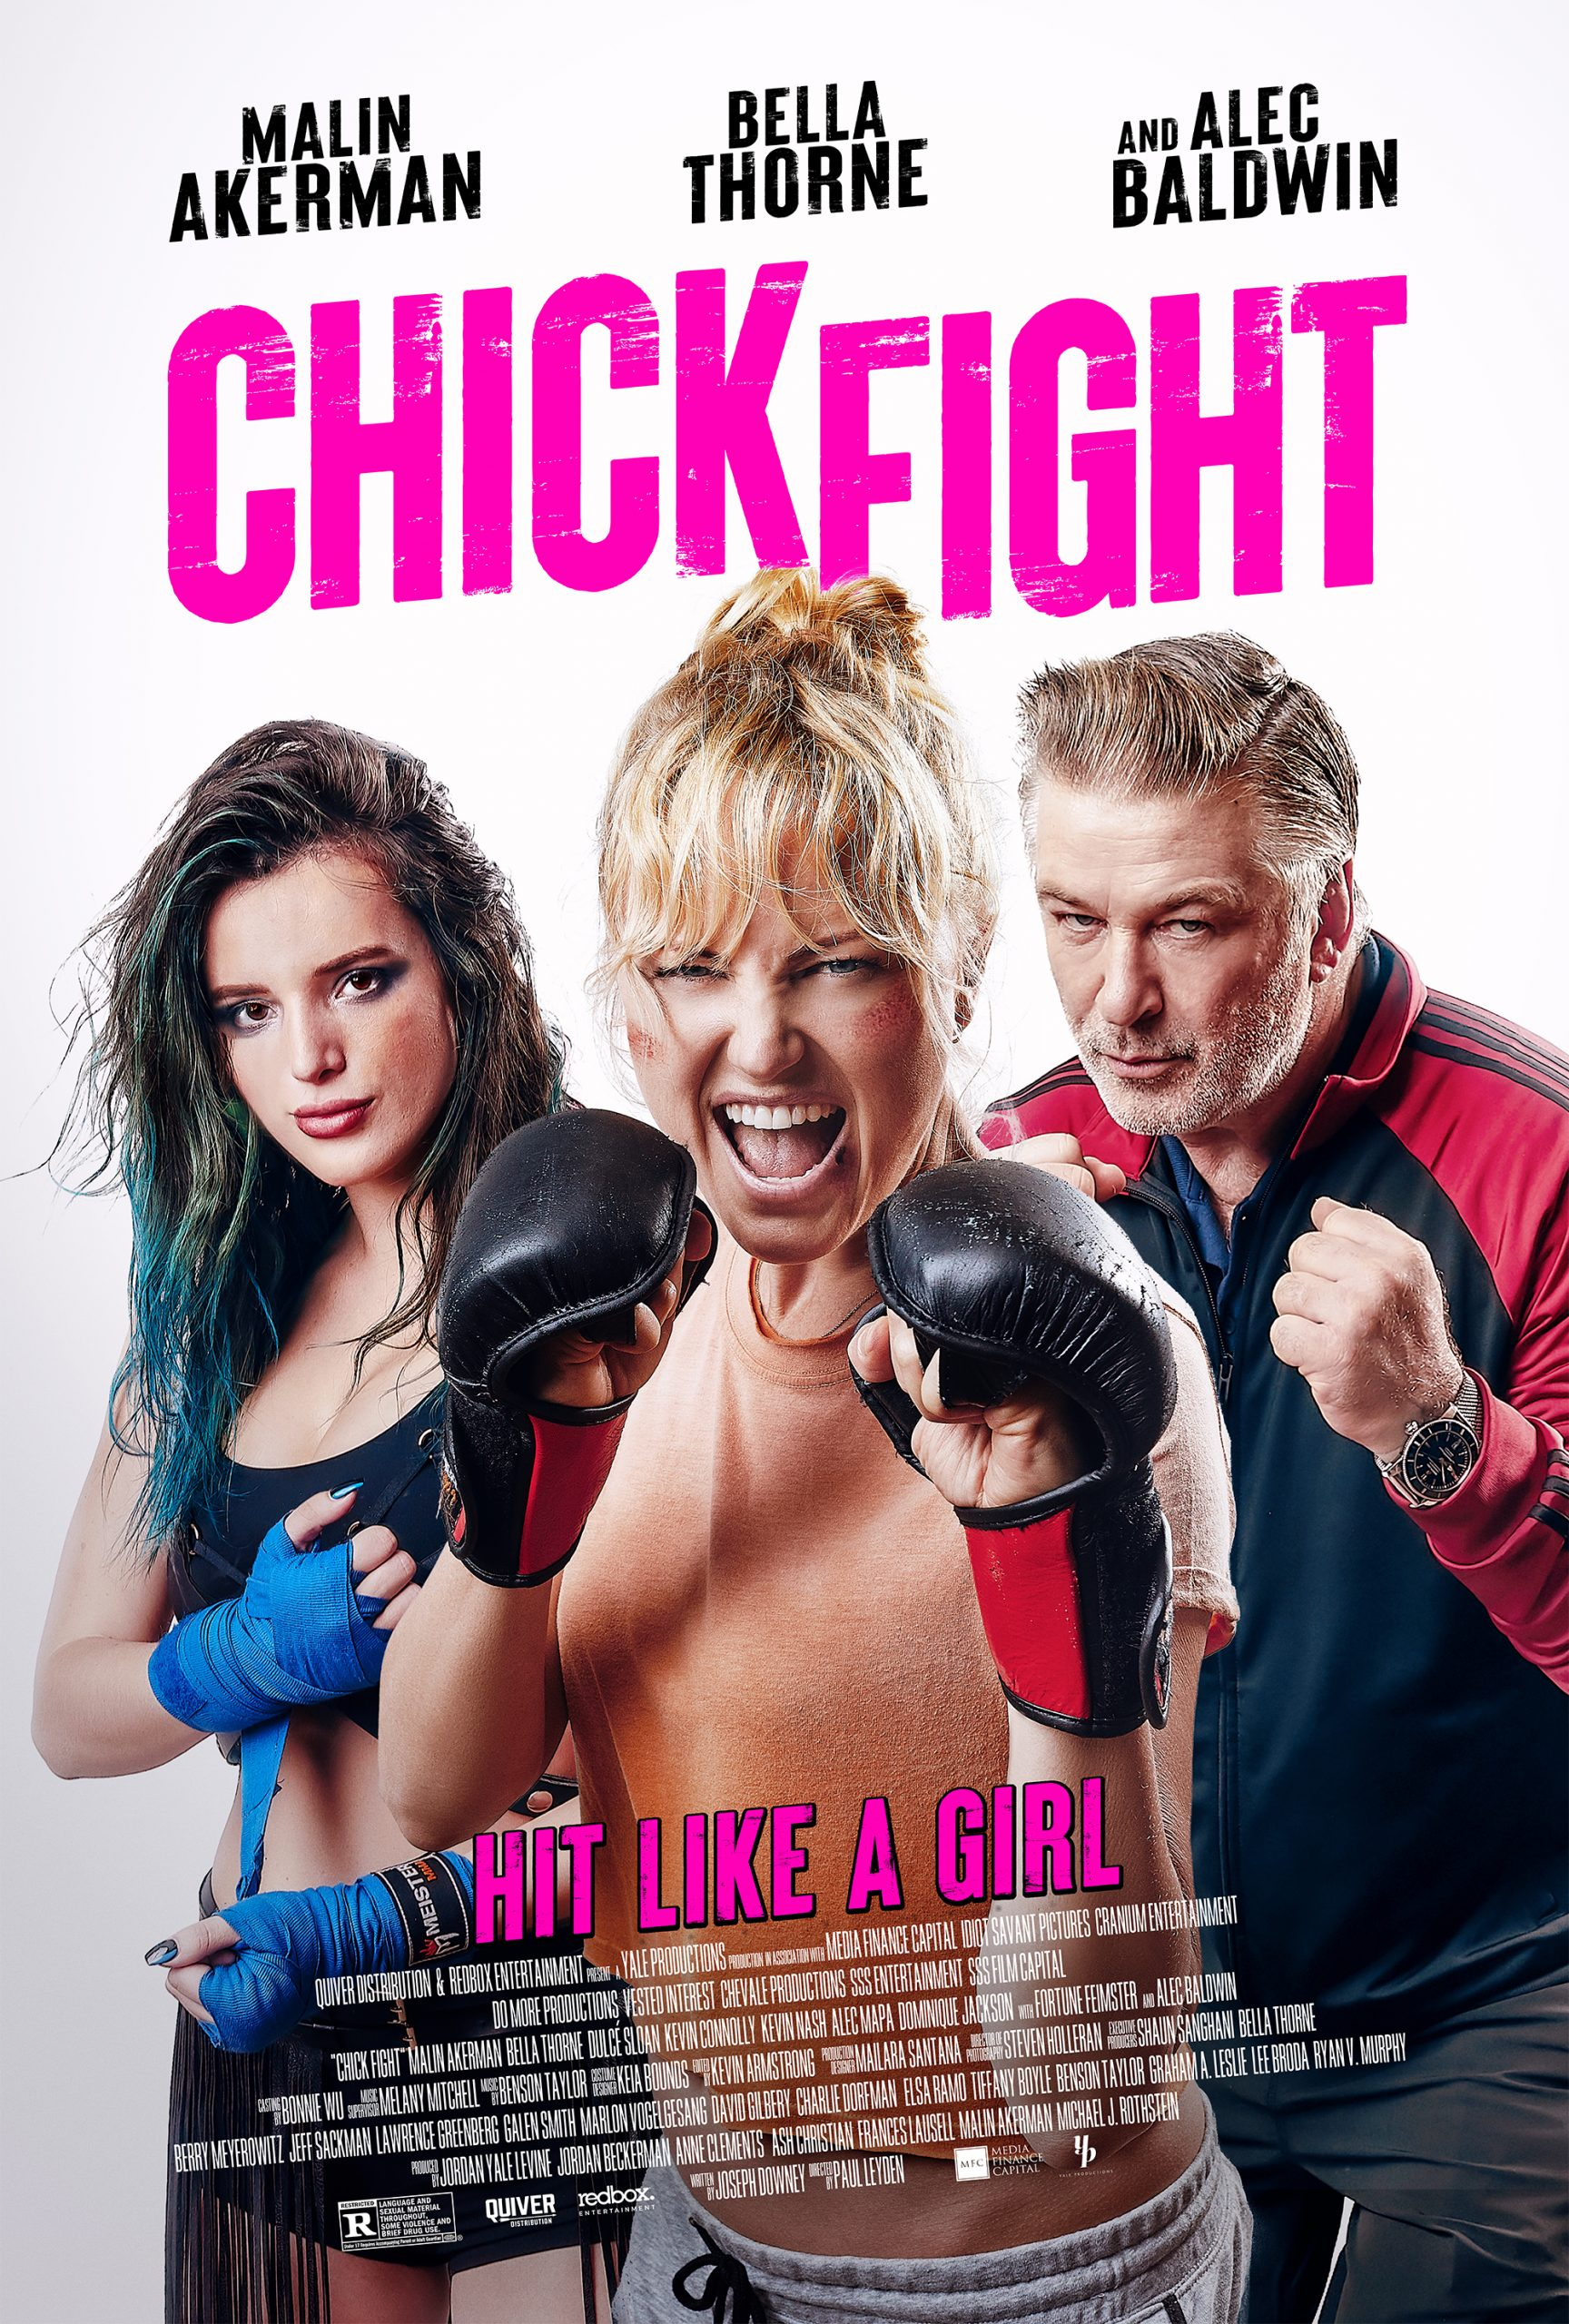 MMA comedy movie 'Chick Fight' starring Bella Thorne and Alec Baldwin slated for Nov. 13 release